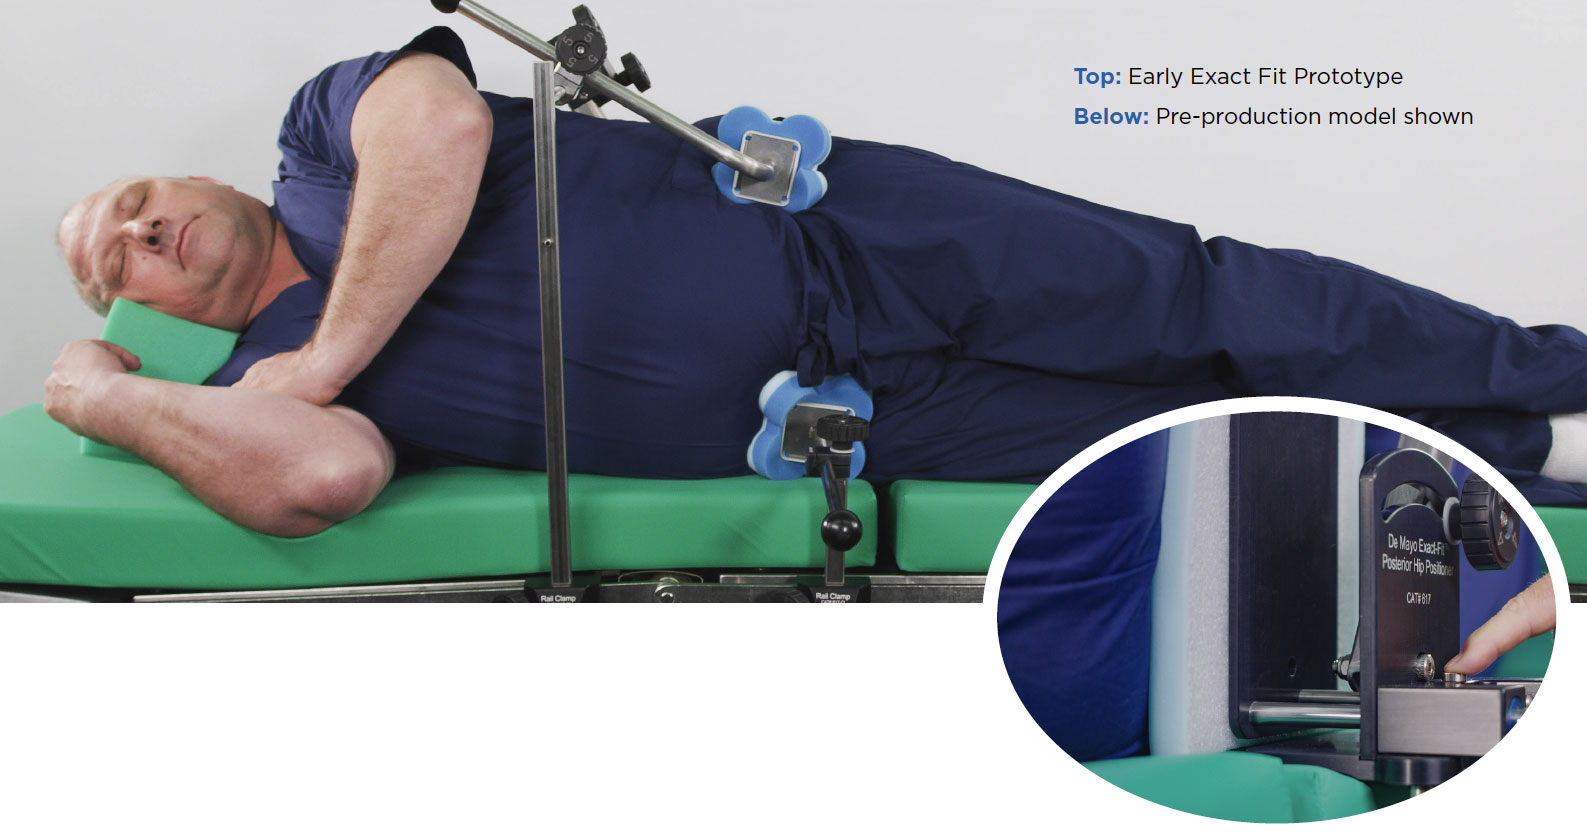 Innovative Medical Products Re-Invents Itself Among the COVID Crisis